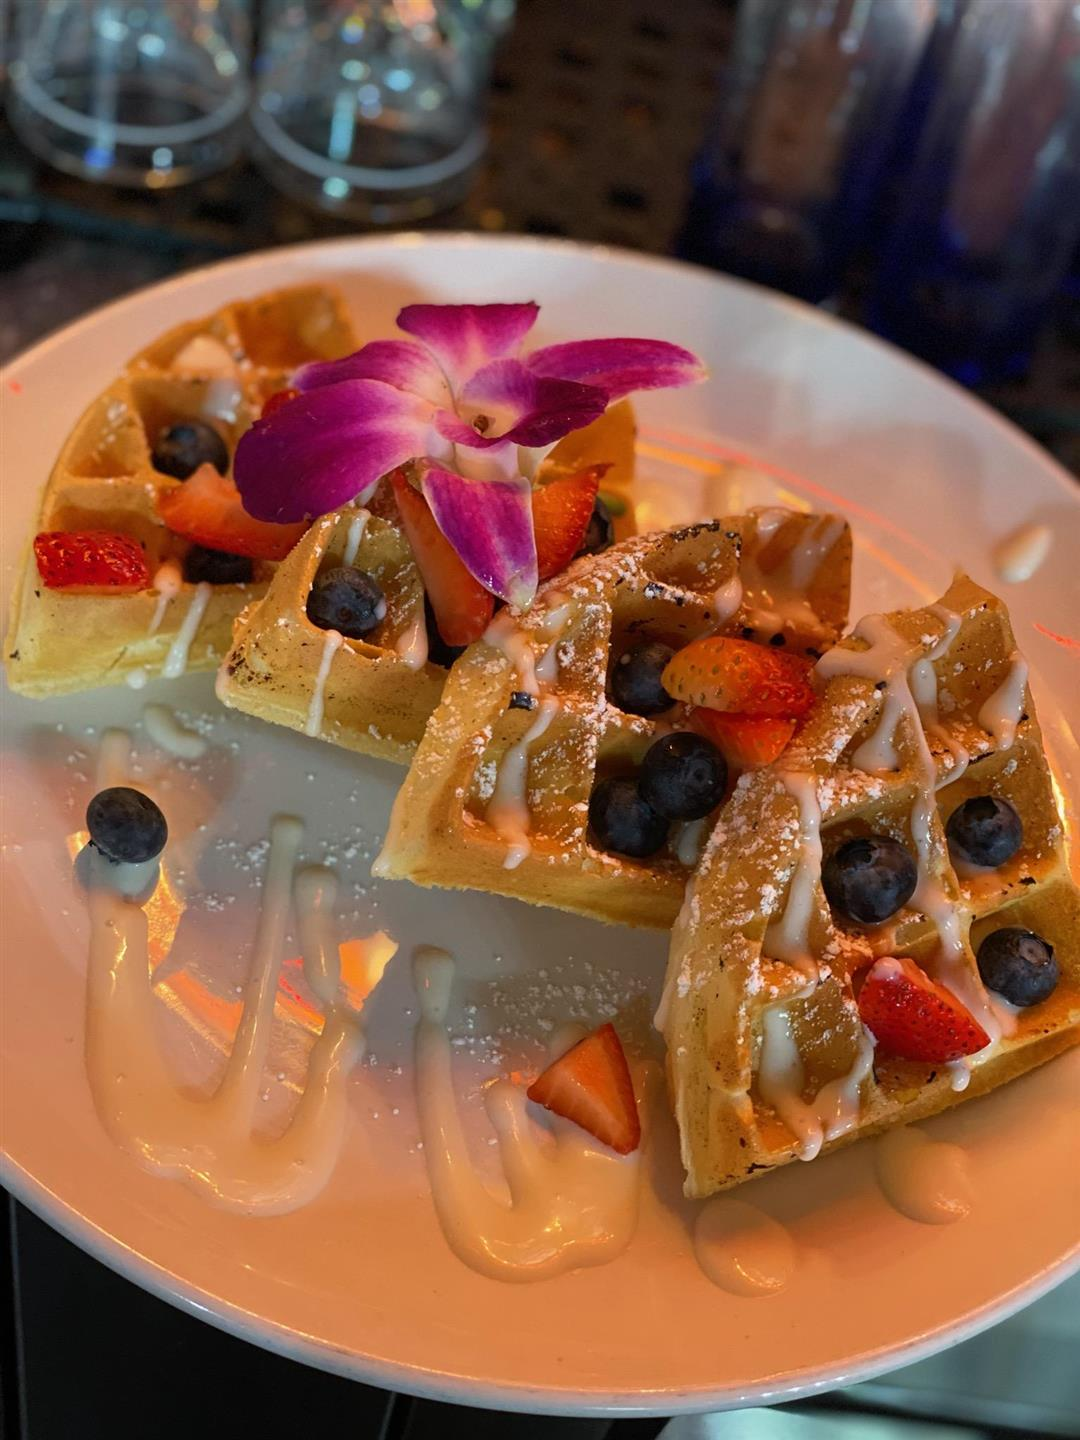 waffles with blueberries, strawberries, and a drizzle of icing with a flower on top